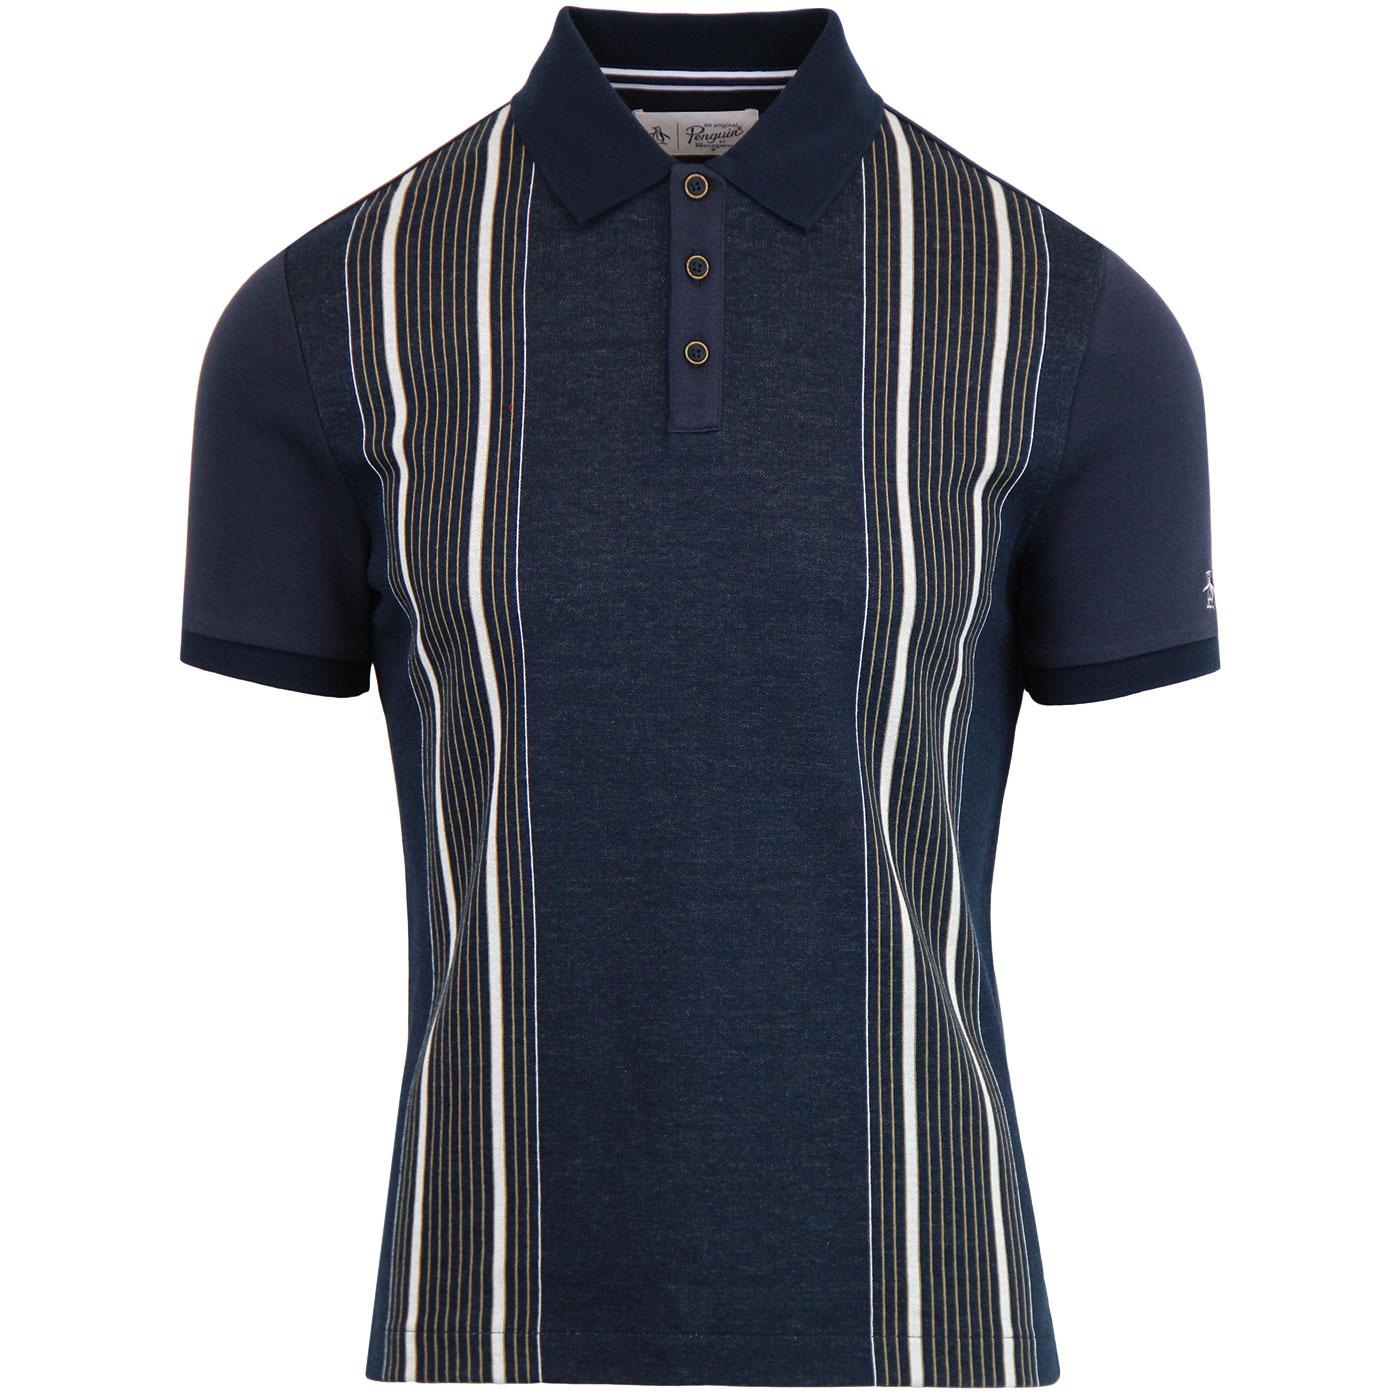 ORIGINAL PENGUIN 60s Mod Multi Stripe Polo Shirt